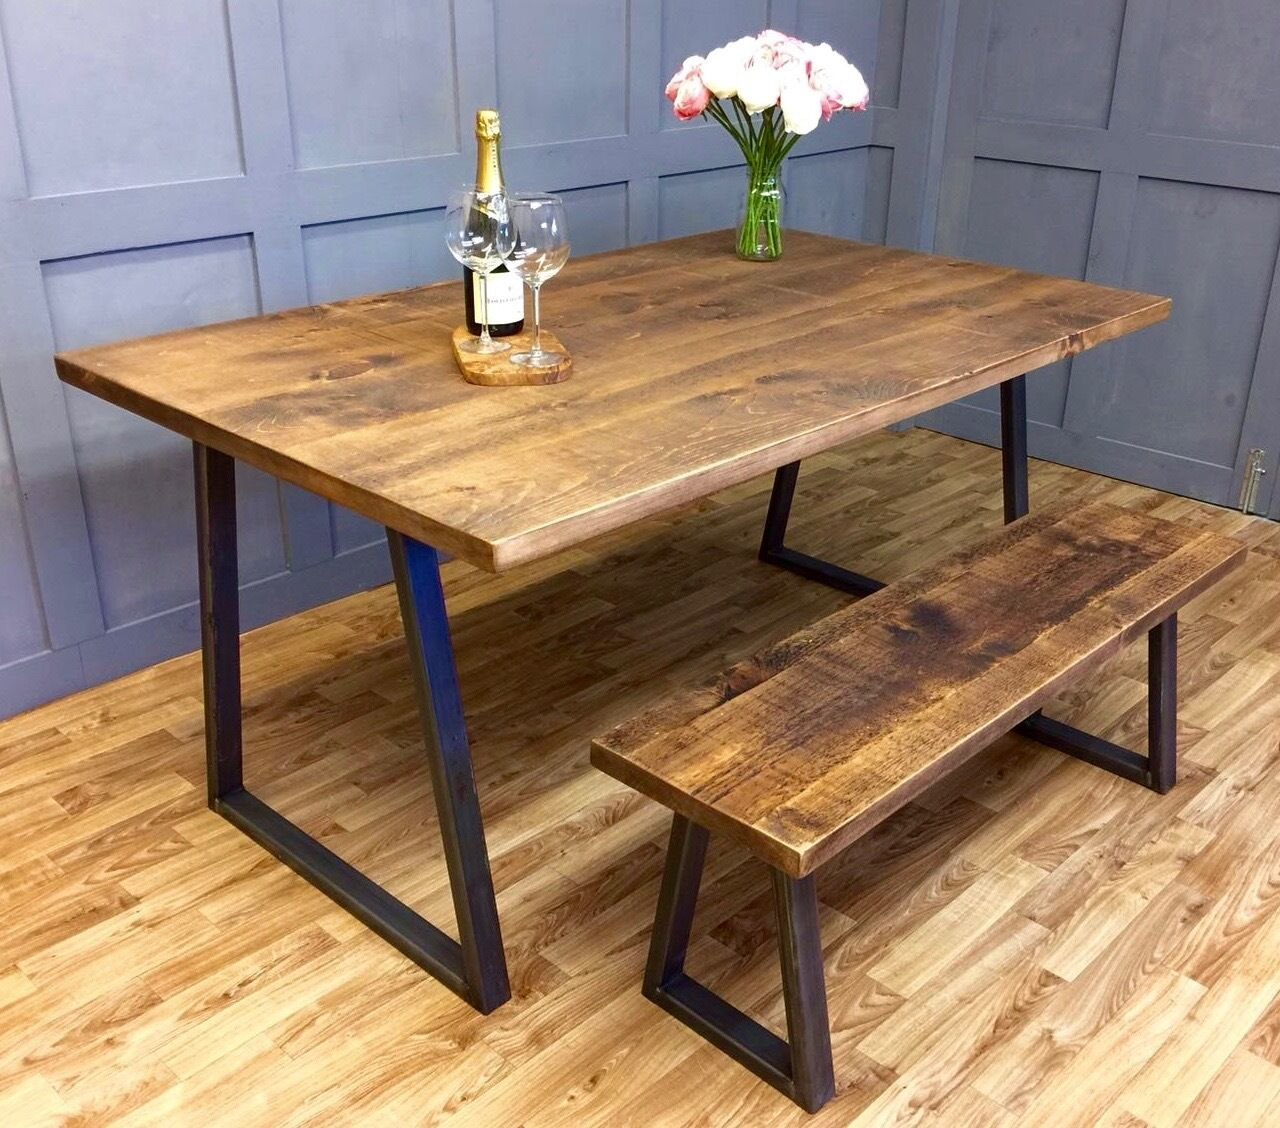 INDUSTRIAL RECLAIMED Dining Table Rustic Solid Antique  : Industrial Reclaimed Dining Table Rustic Solid Antique Kitchen from picclick.co.uk size 1280 x 1128 jpeg 230kB